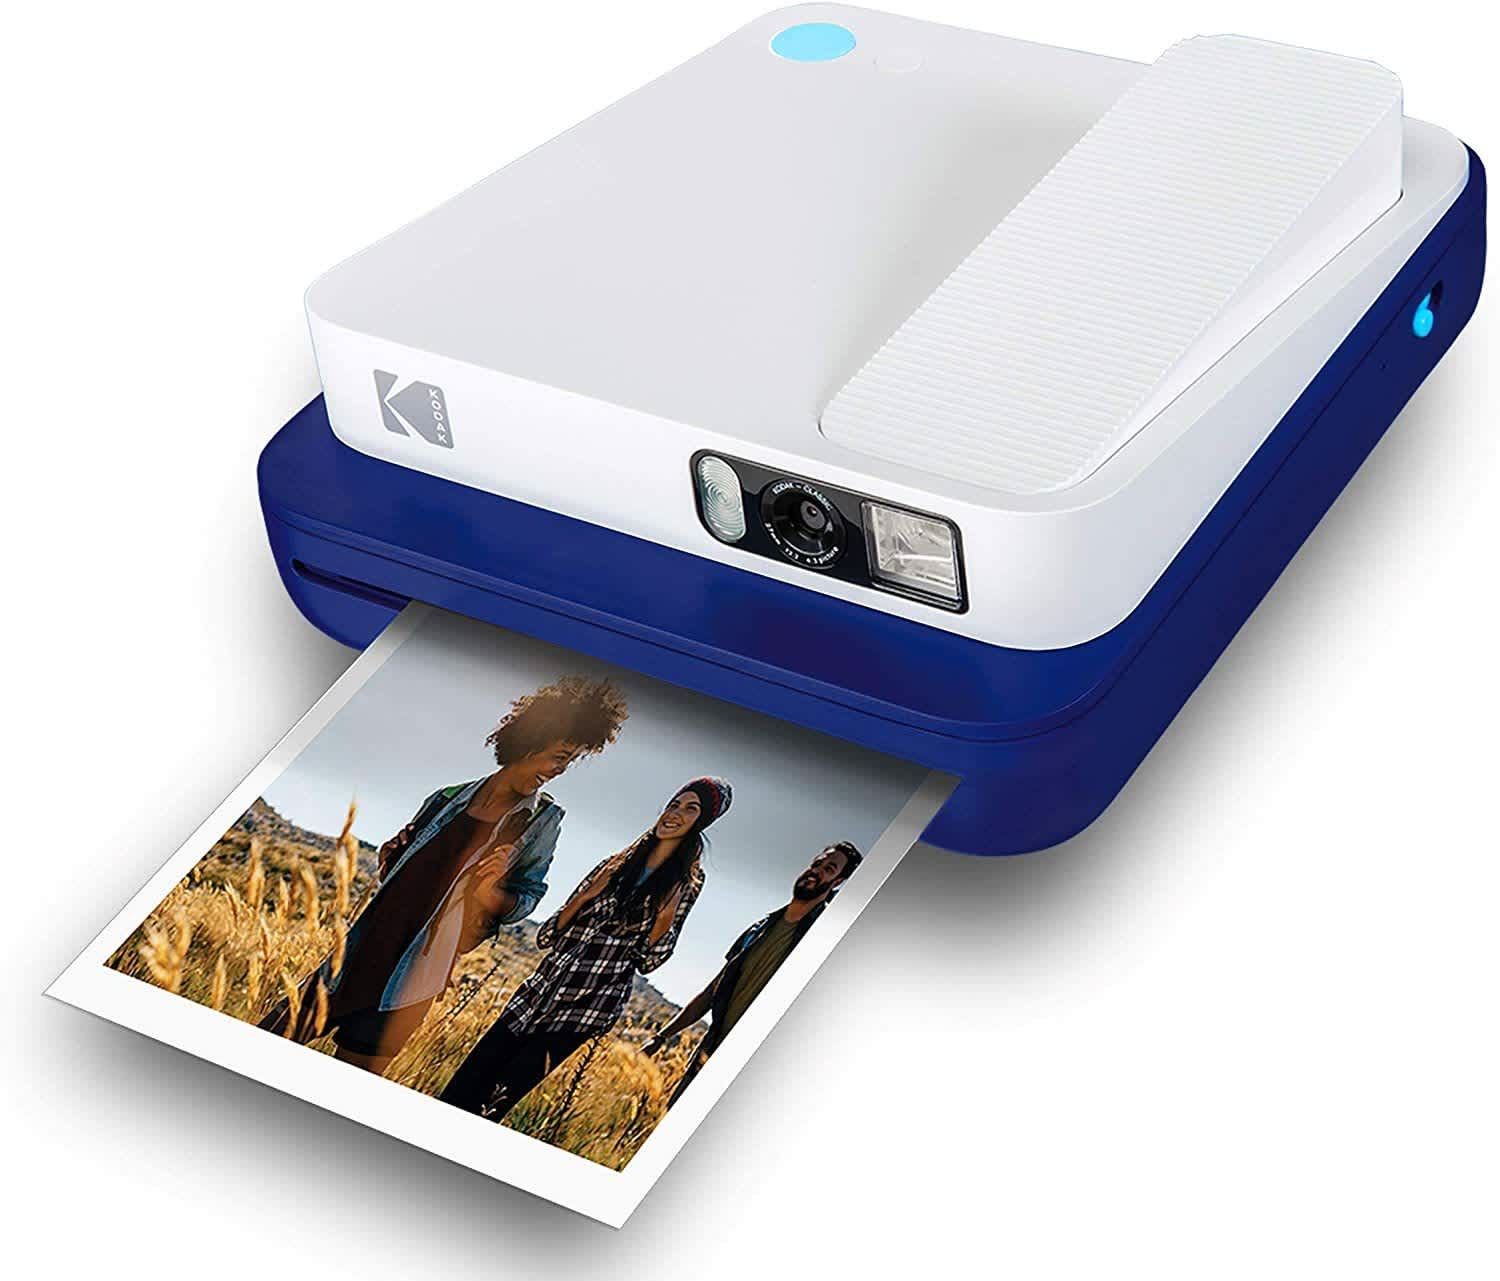 Kodak Instant Cameras and Portable Photo Printers at Amazon